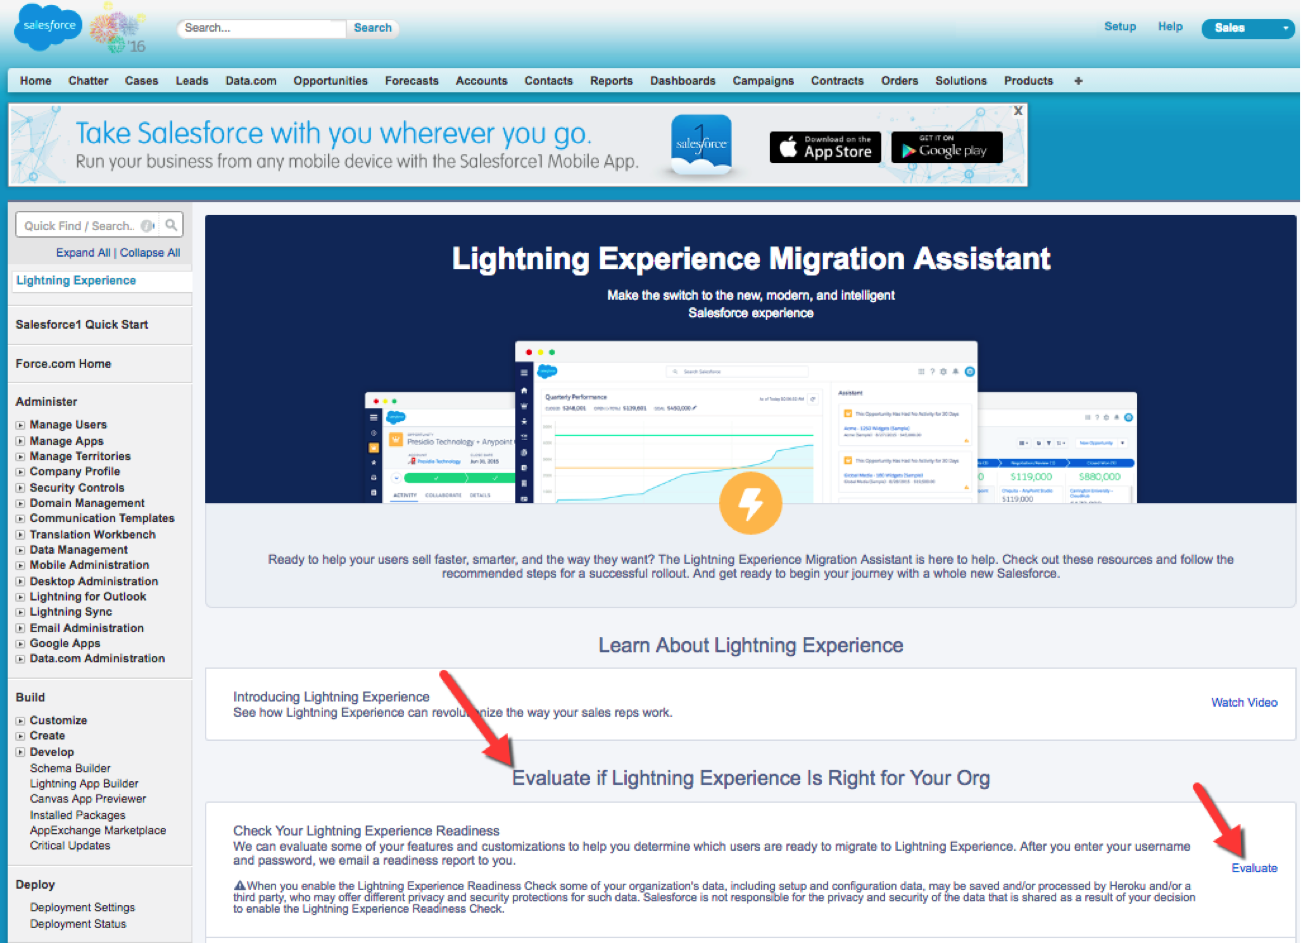 How Do I Know If My Org Is Ready For Lightning Experience